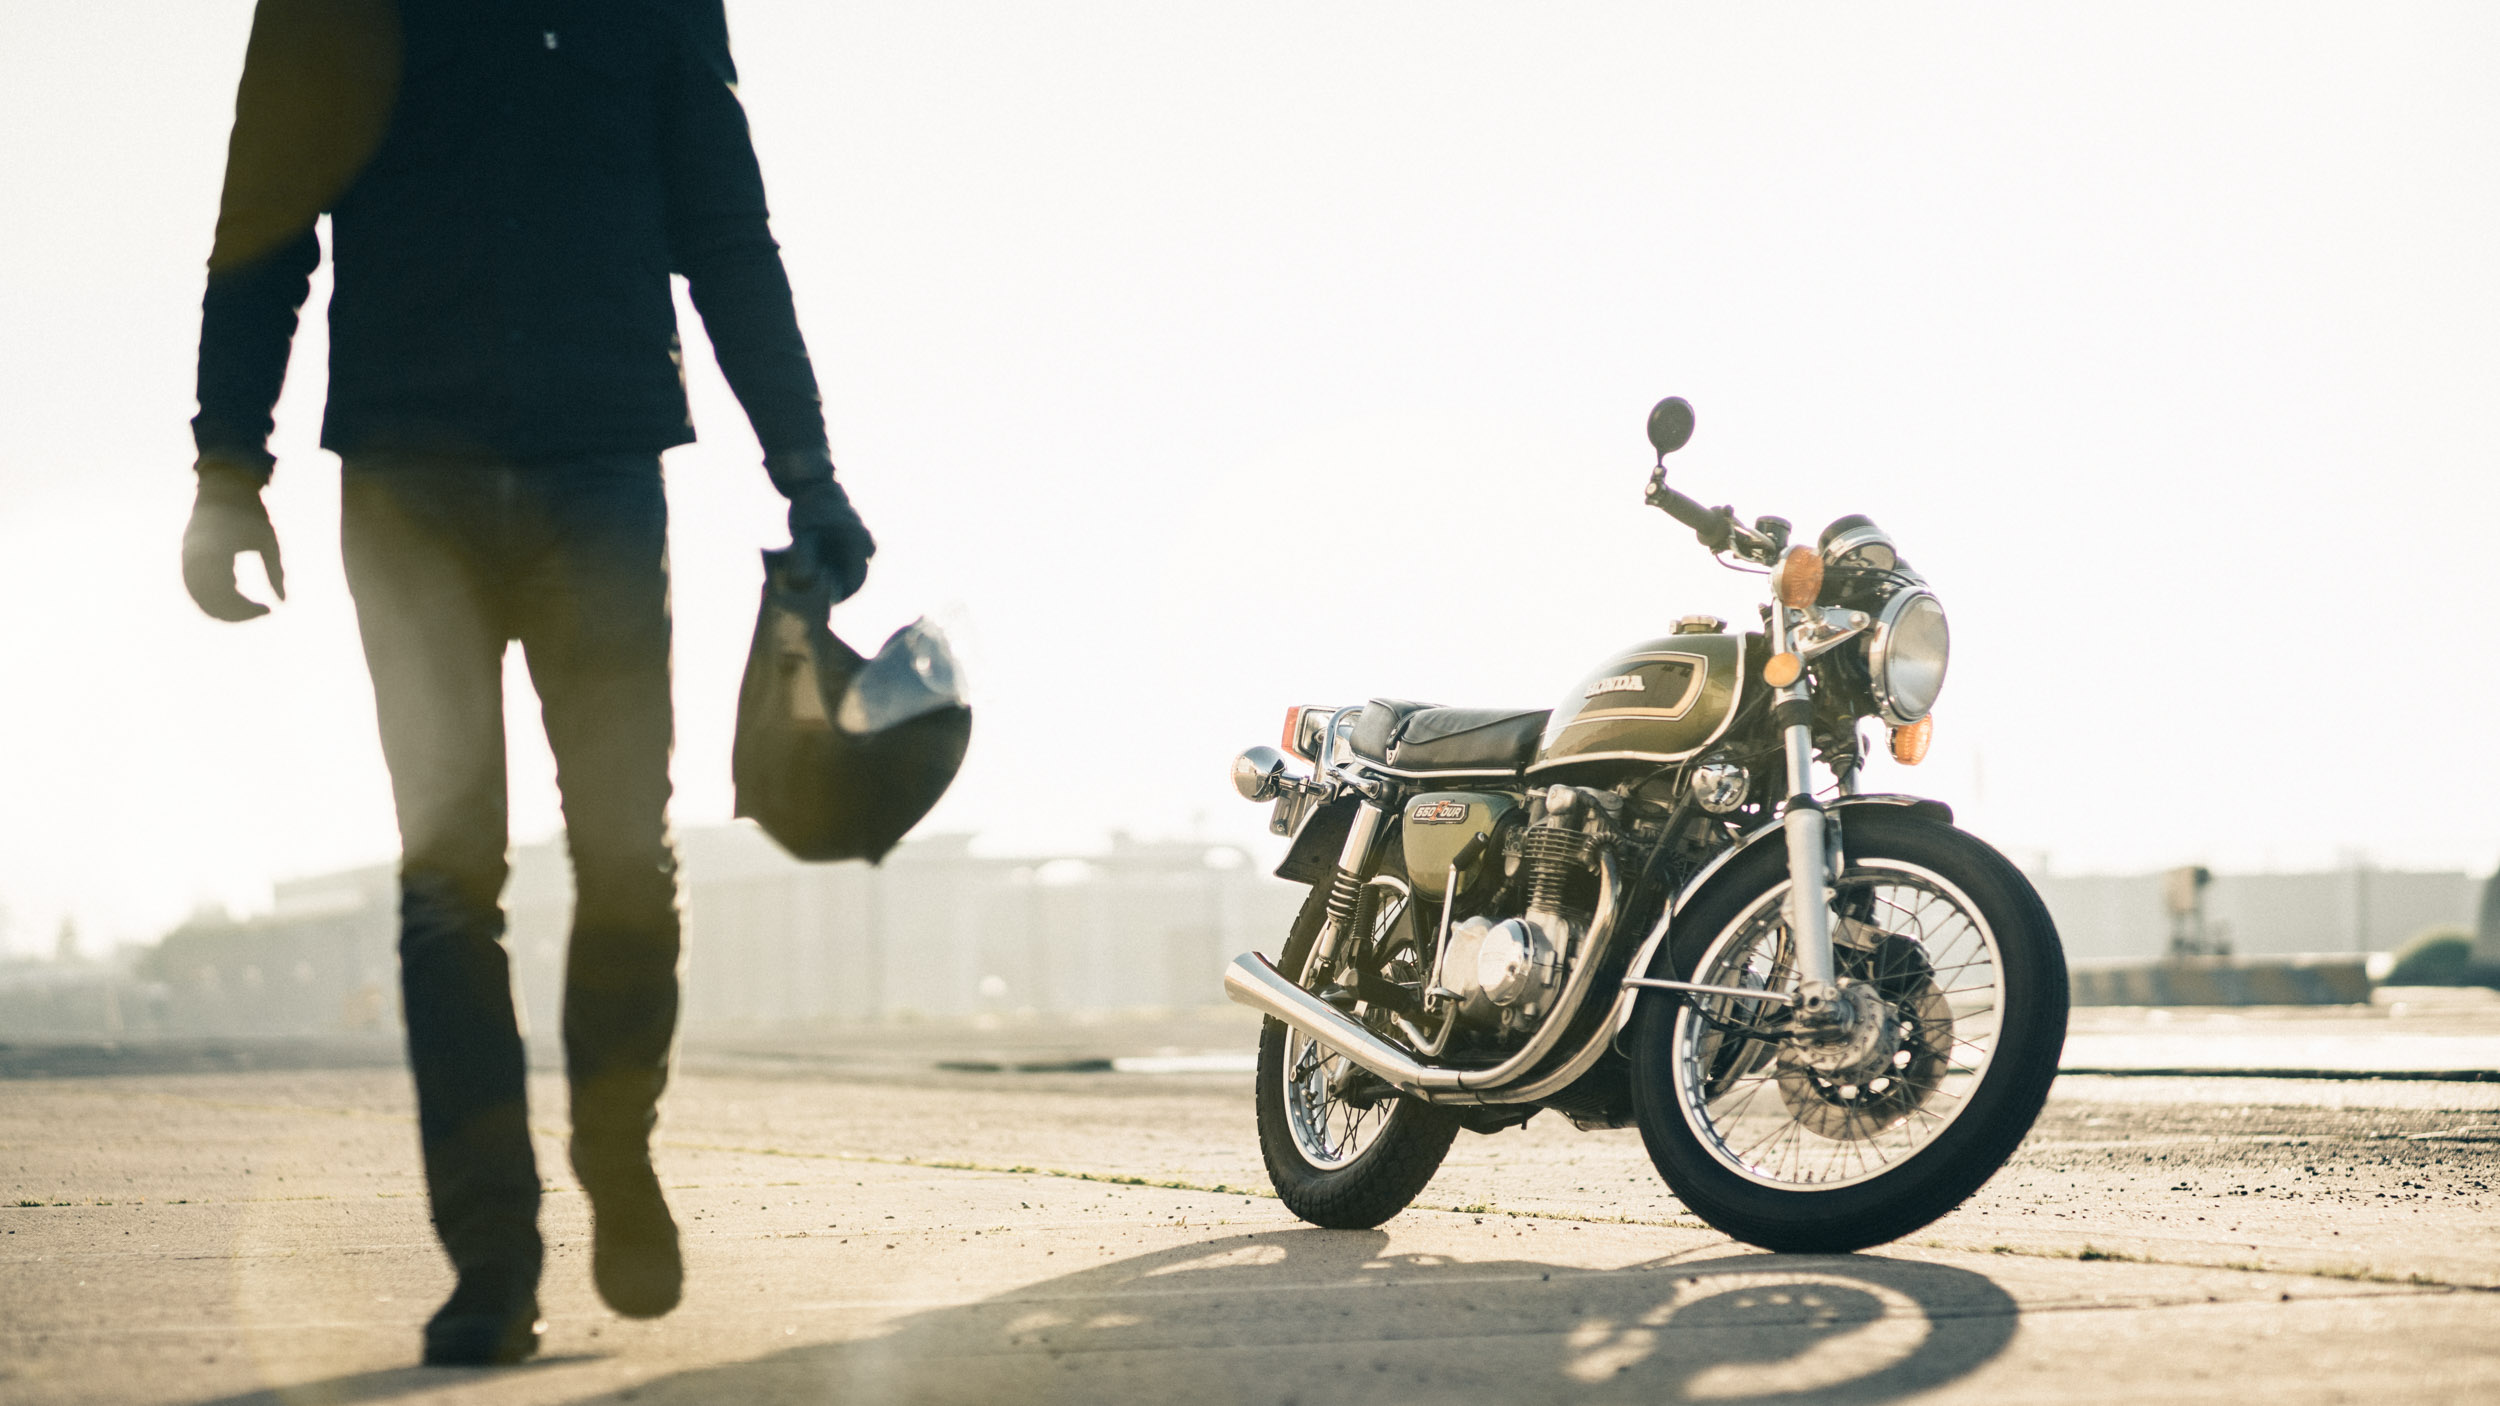 Male in black clothing walks away from vintage Honda CB550 motorcycle on a tarmac